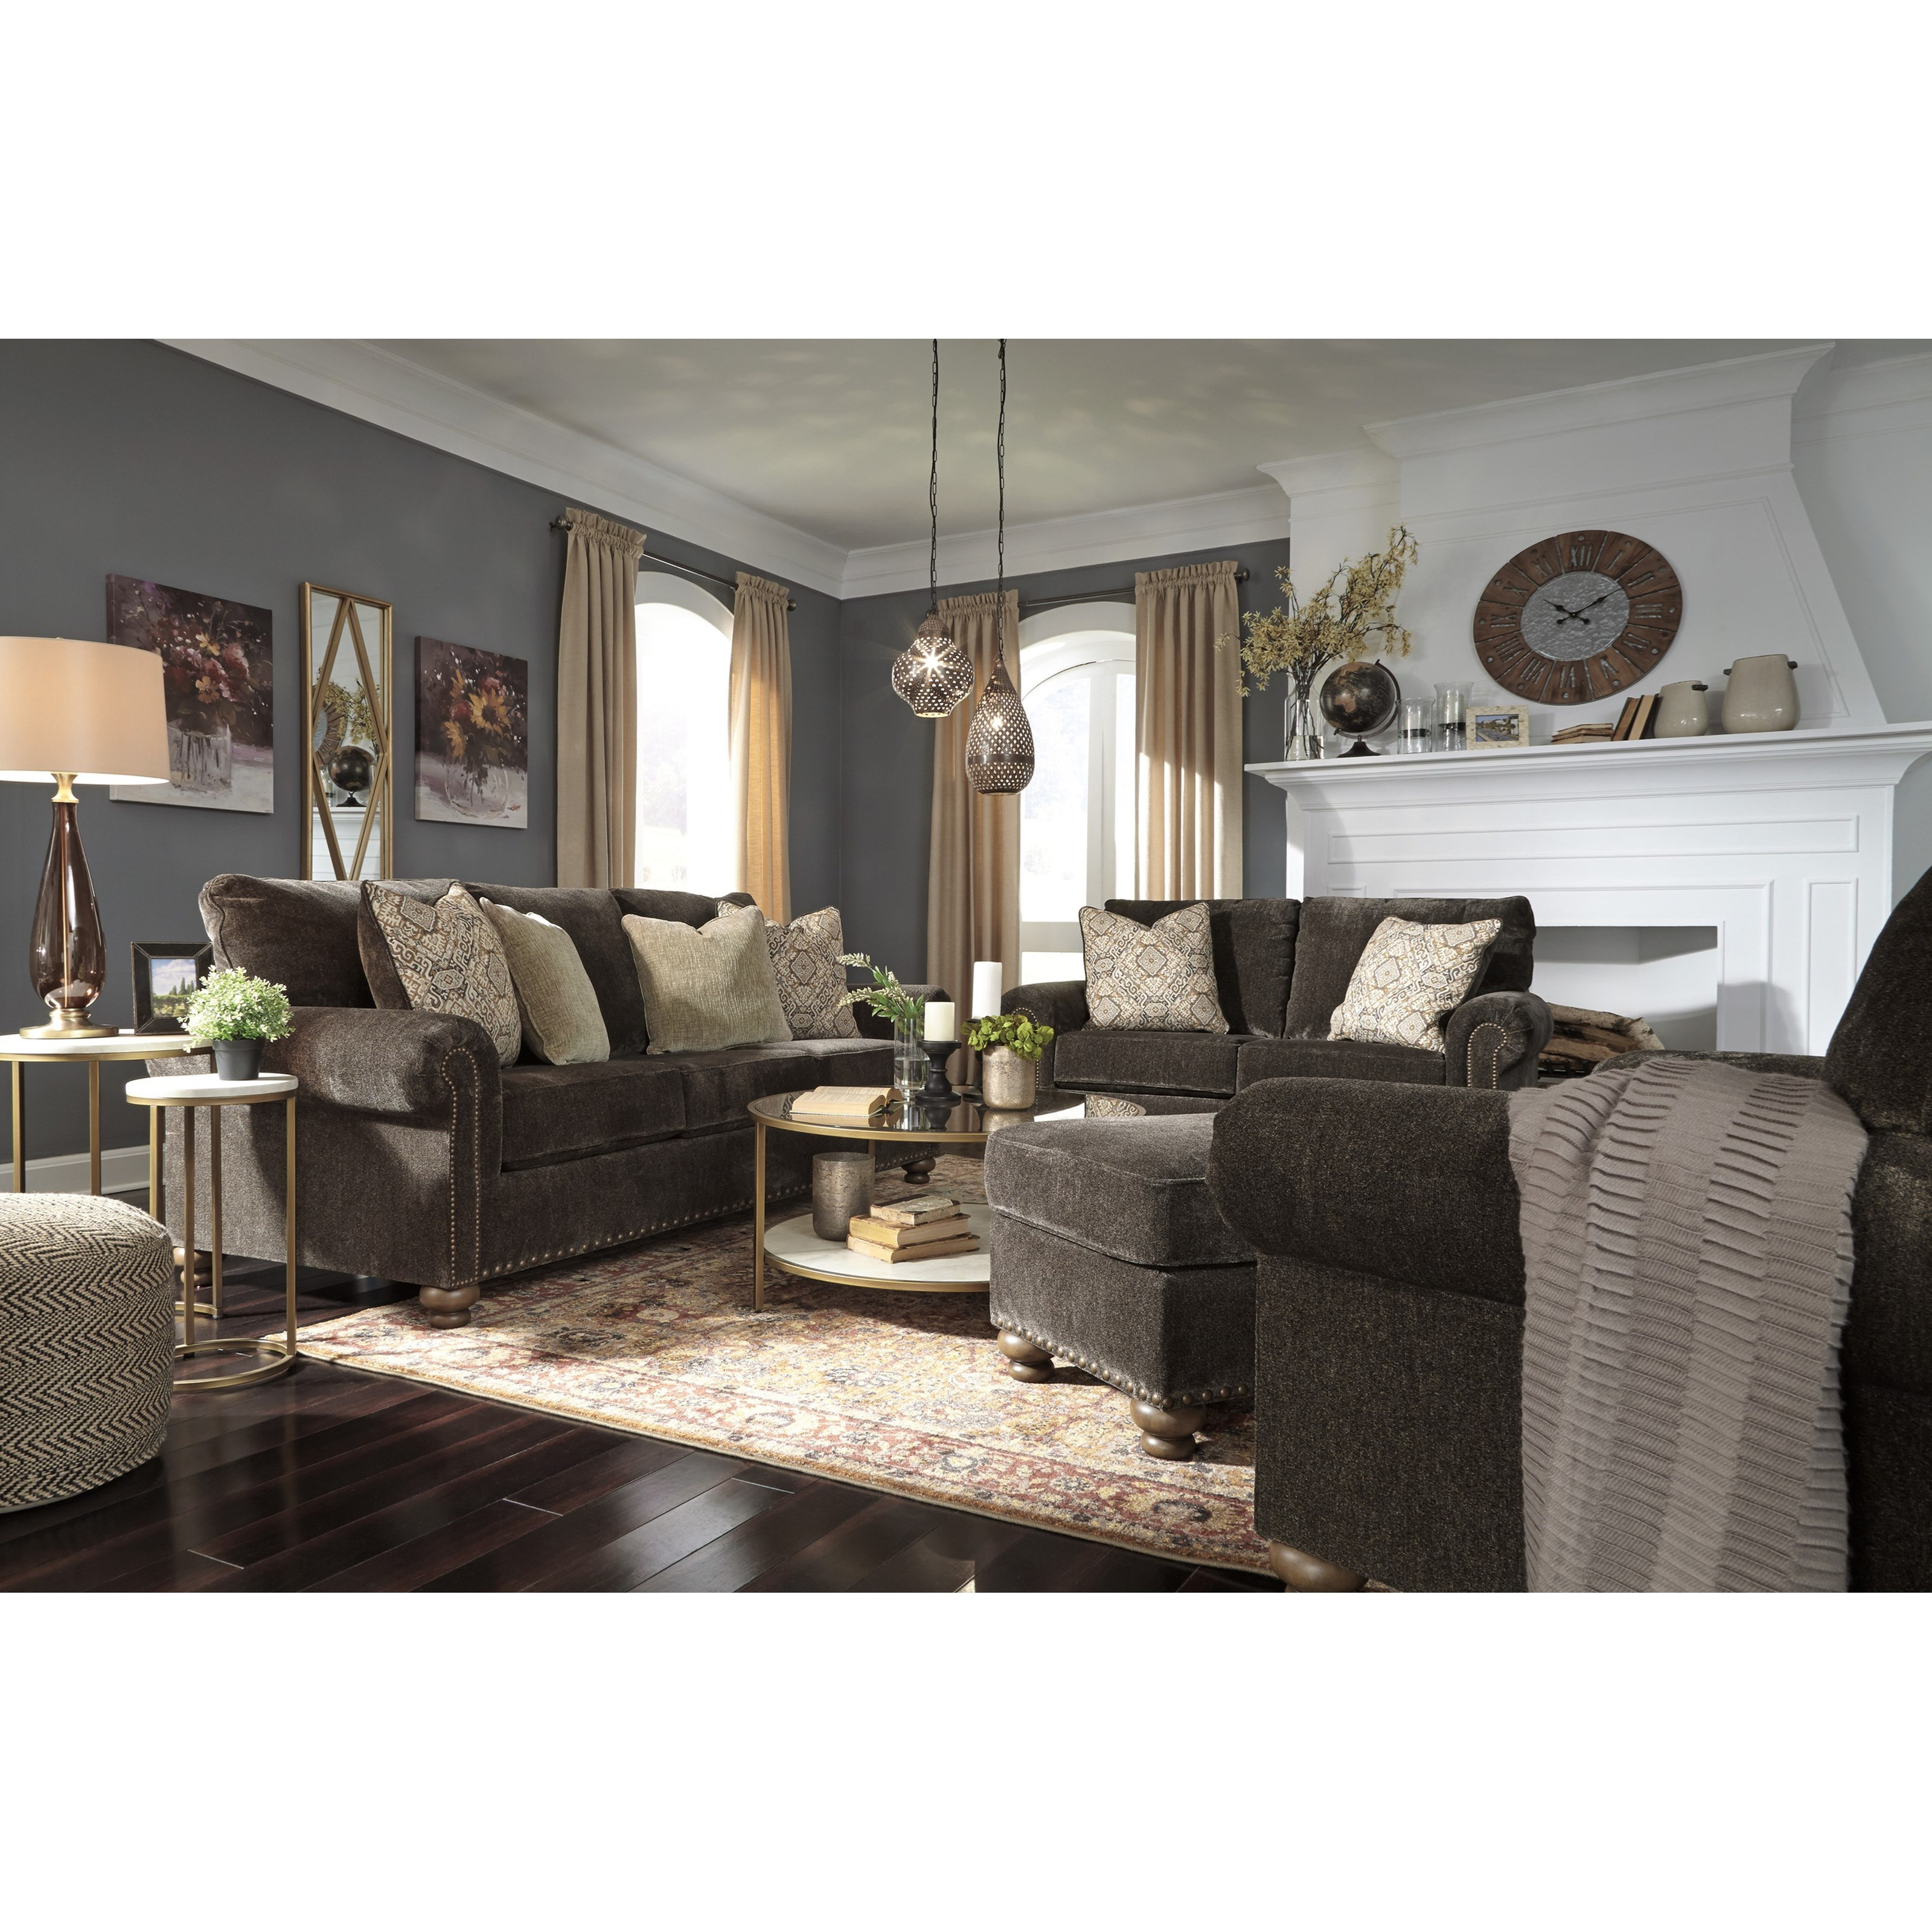 Stracelen Stationary Living Room Group by Ashley (Signature Design) at Johnny Janosik